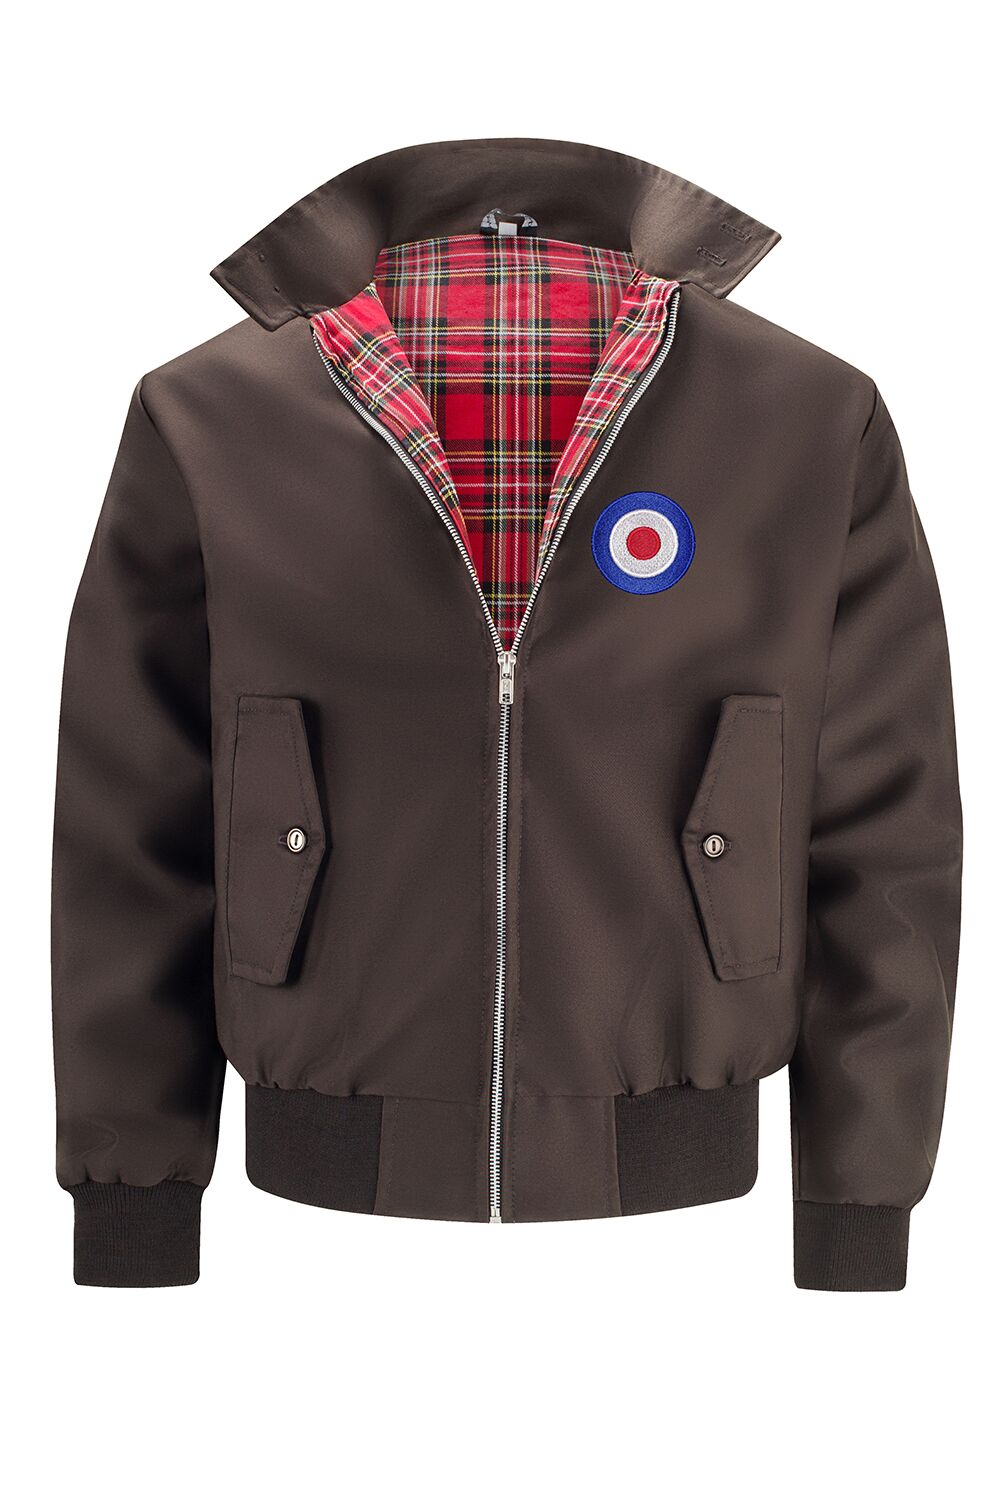 Mens Classic Harrington Jacket - Brown (with MOD badge)